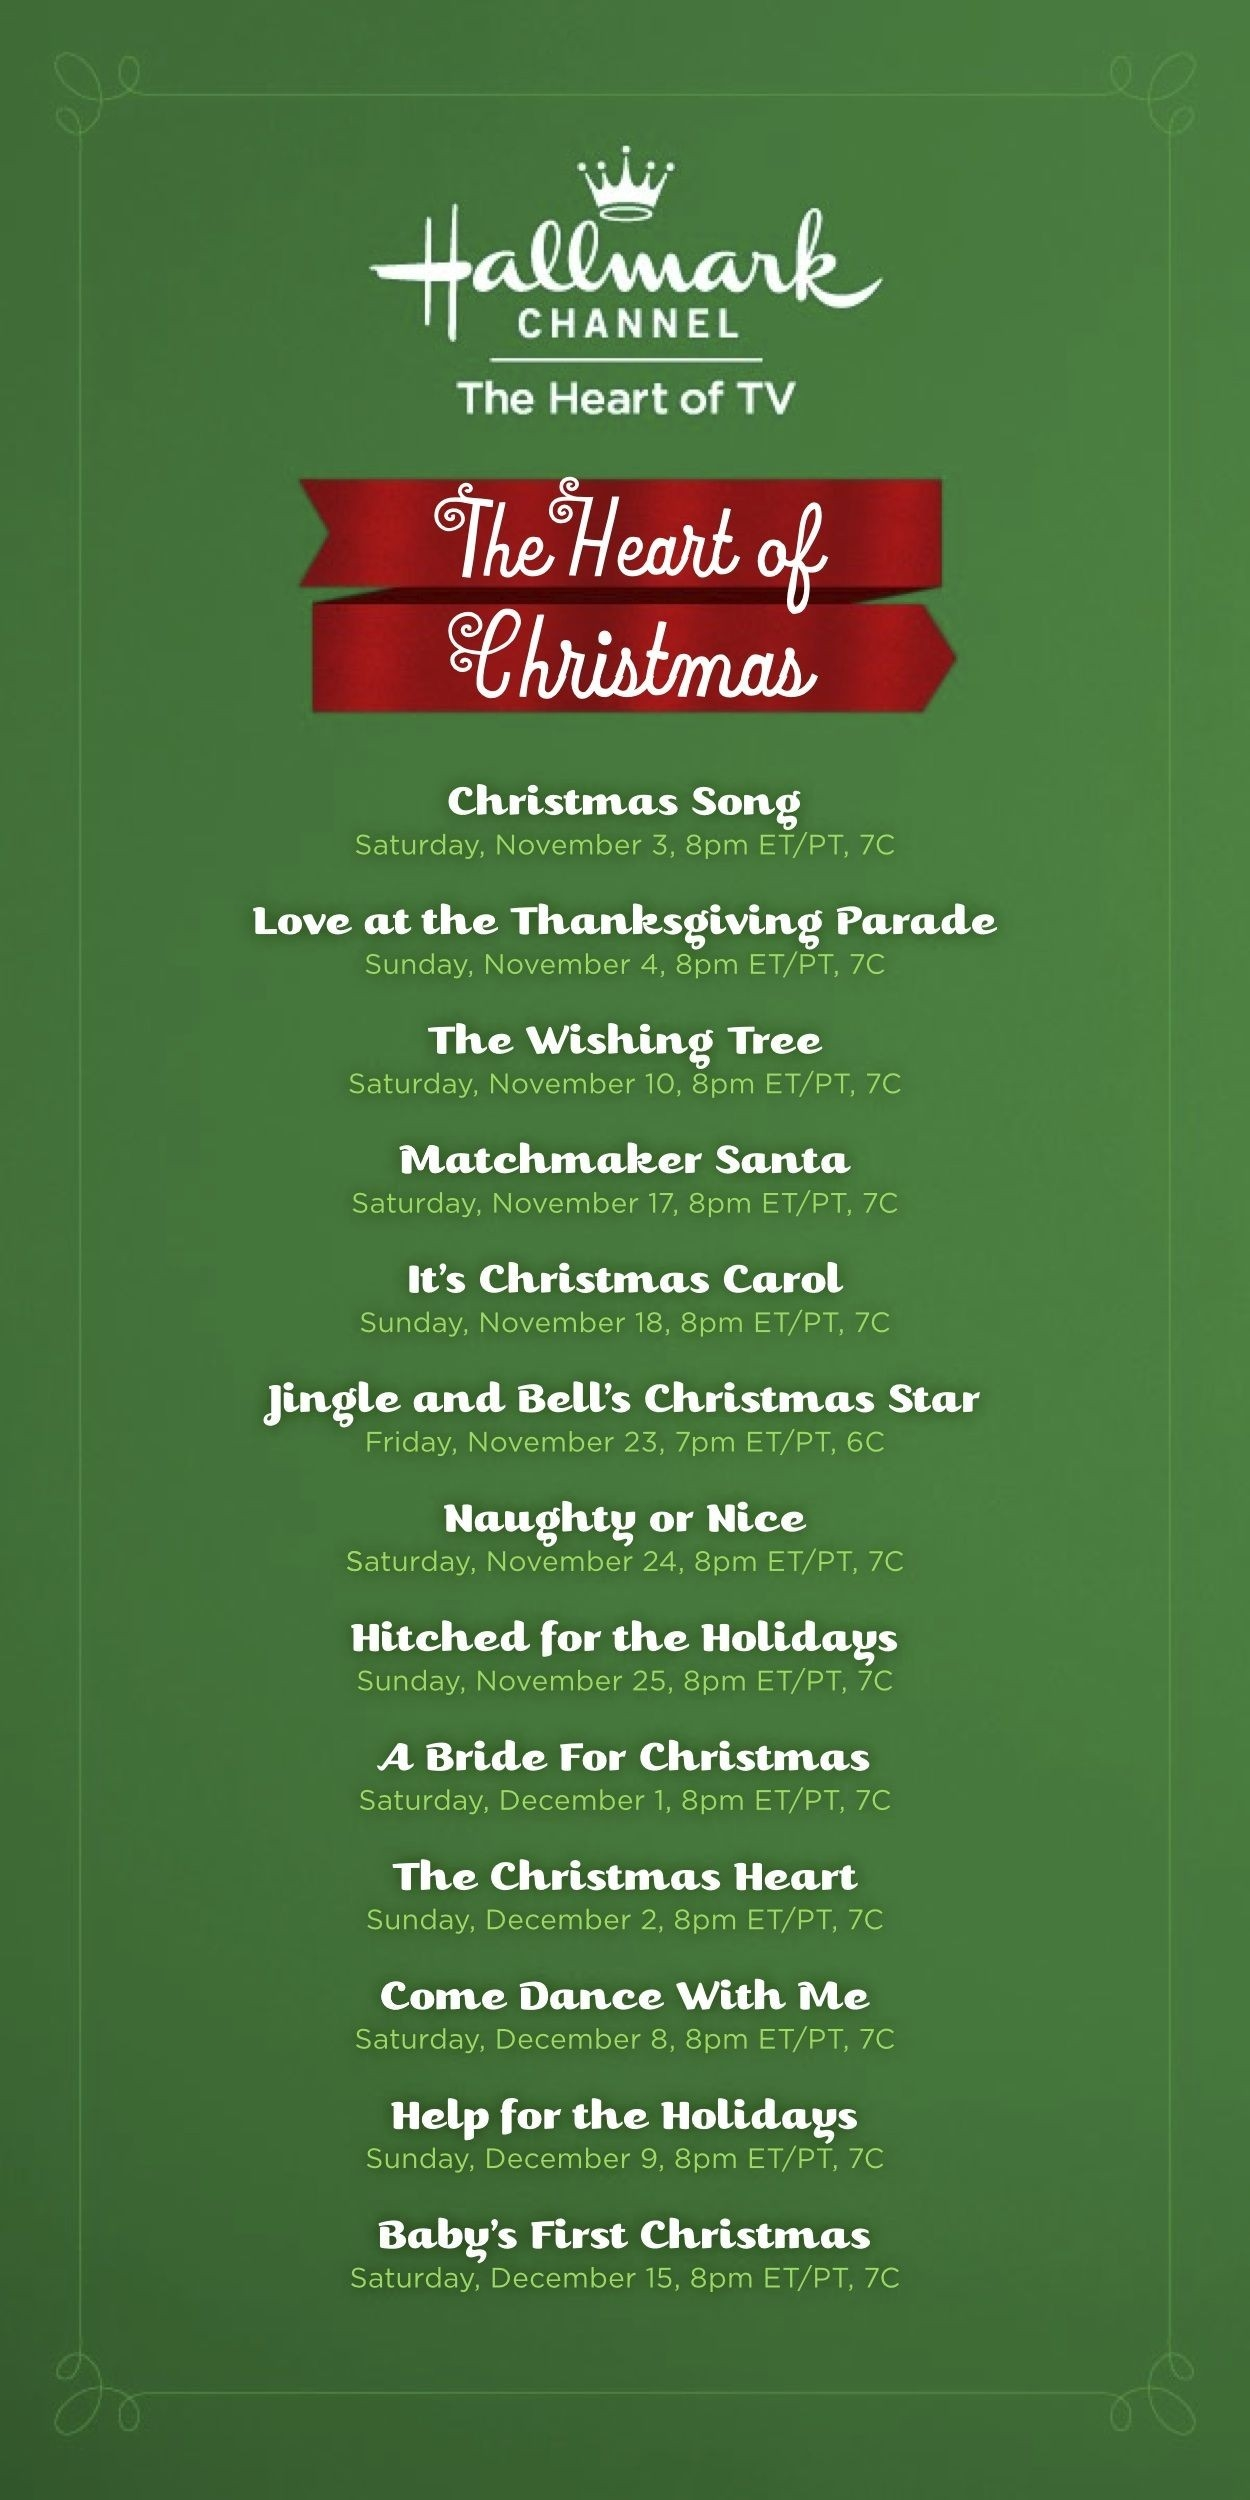 Holiday Movie Lineup On The Hallmark Channel | Holiday Movie-What Are Hallmark Holidays